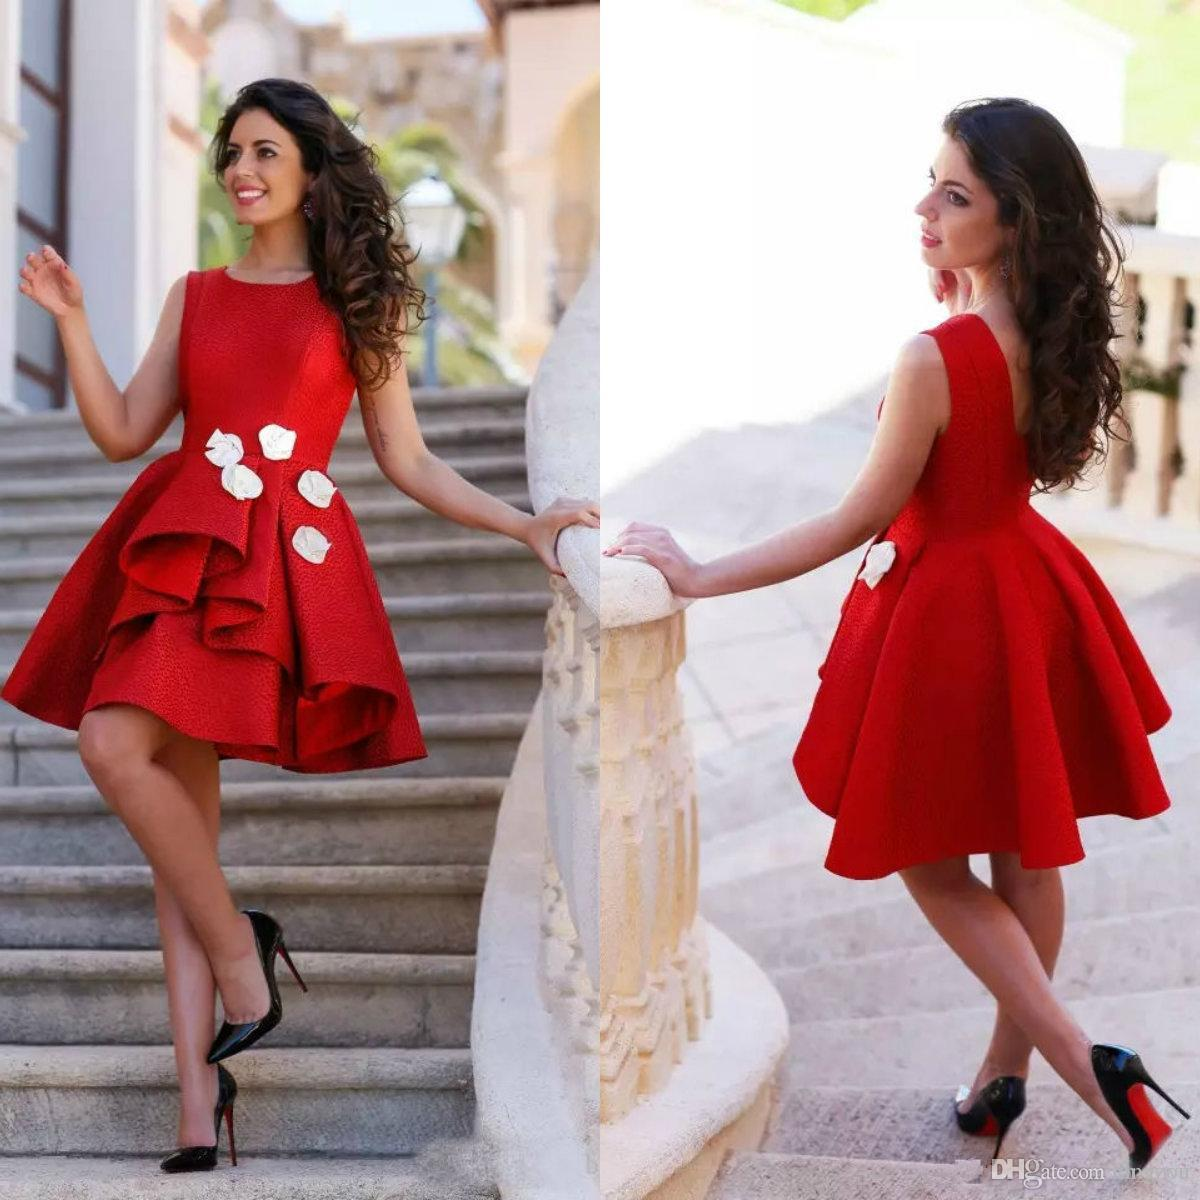 Short Red Homecoming Dresses With White Flowers Knee Length A Line